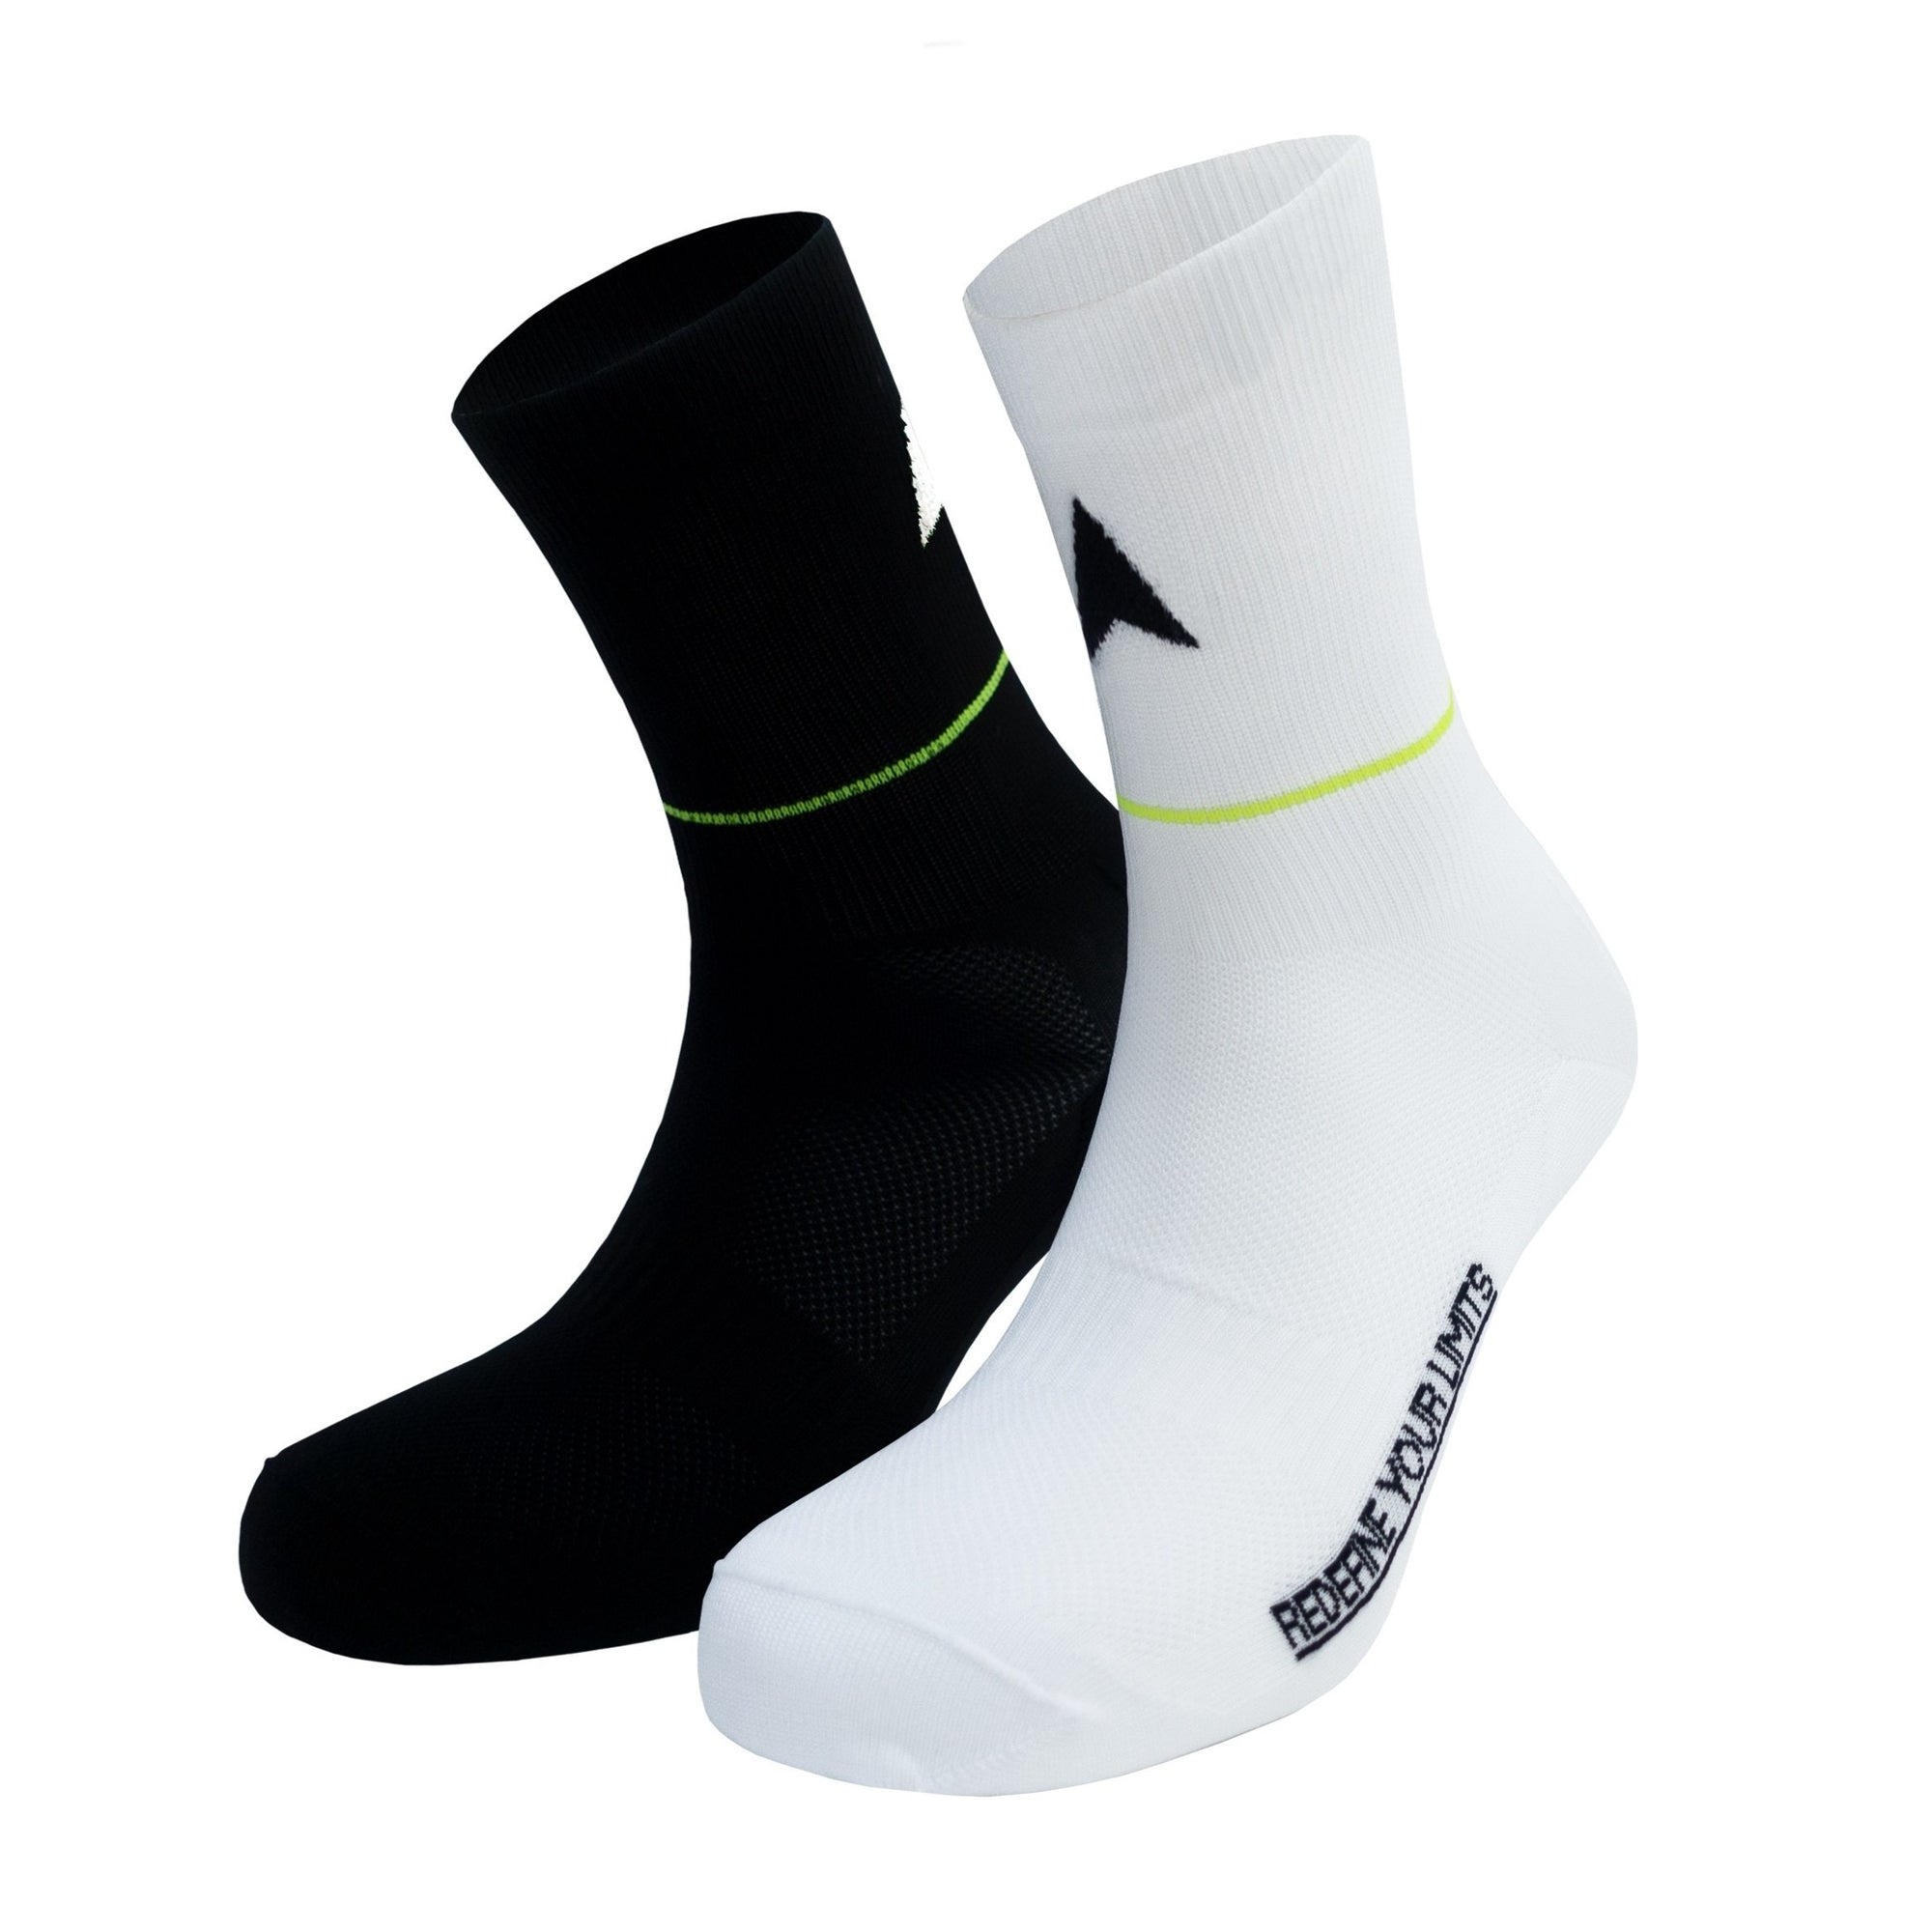 Statement Socks *black and white